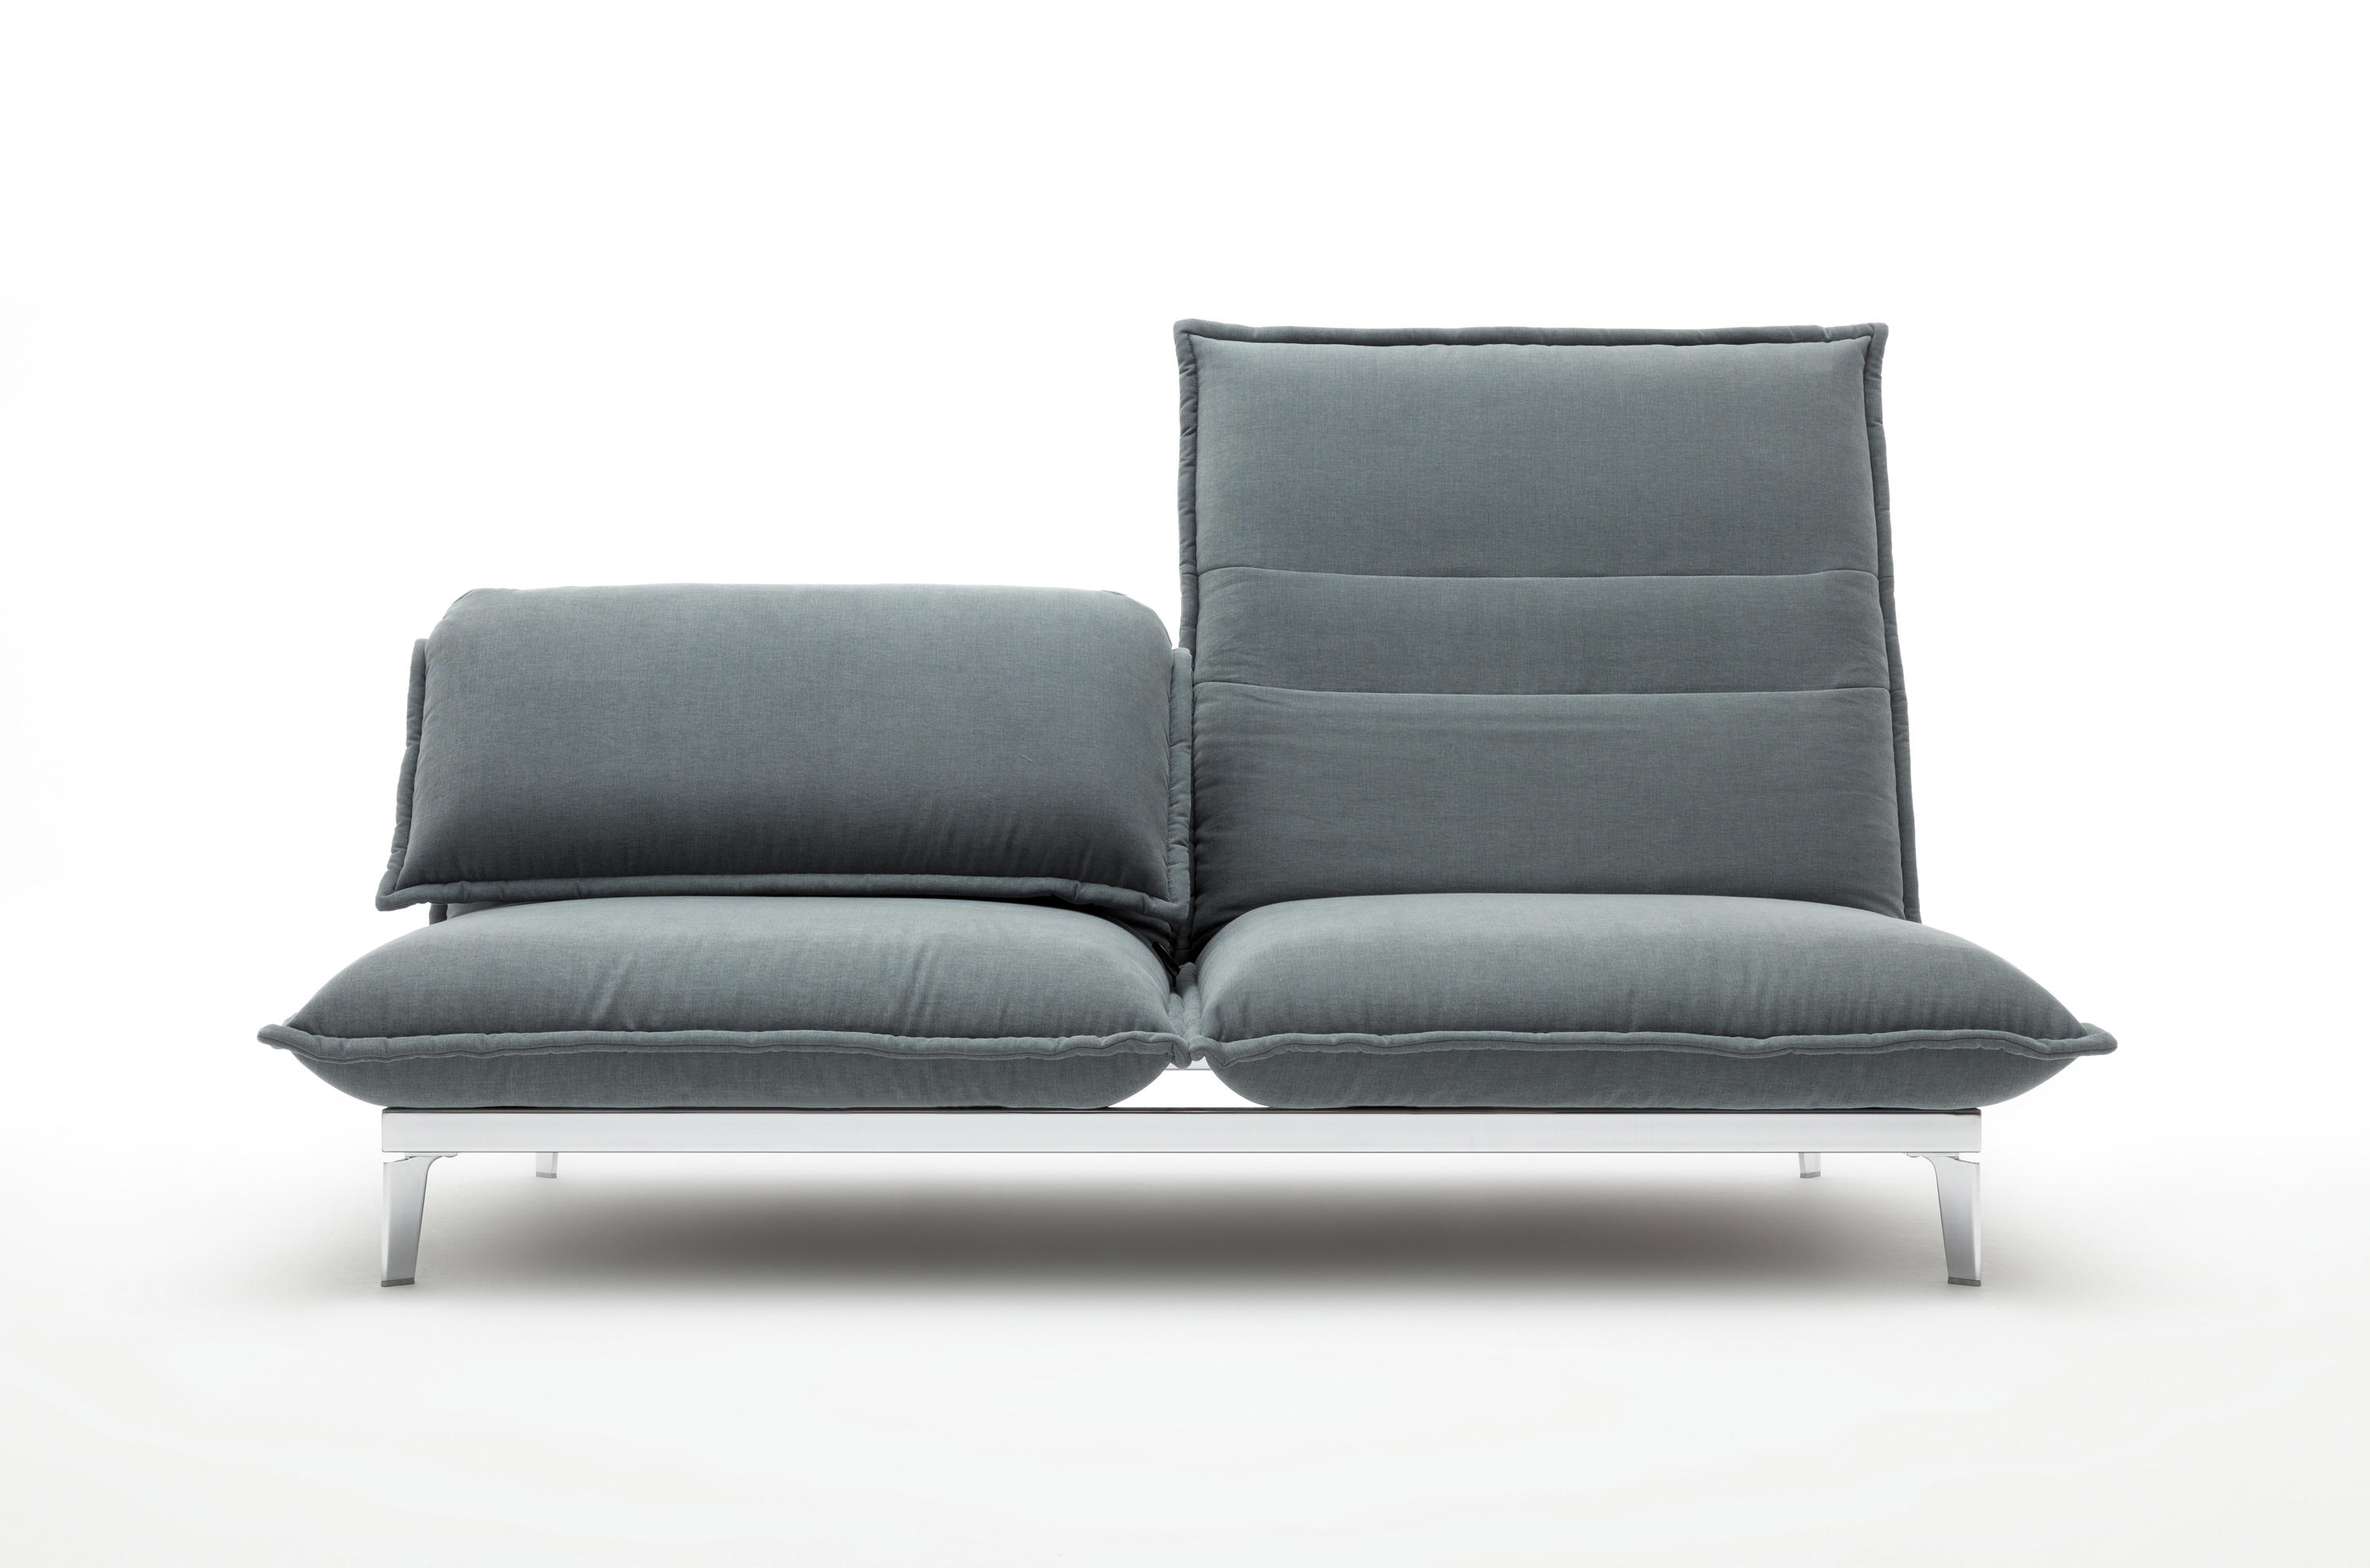 Rolf benz nova relaxsofas von rolf benz architonic for Rolf benz katalog